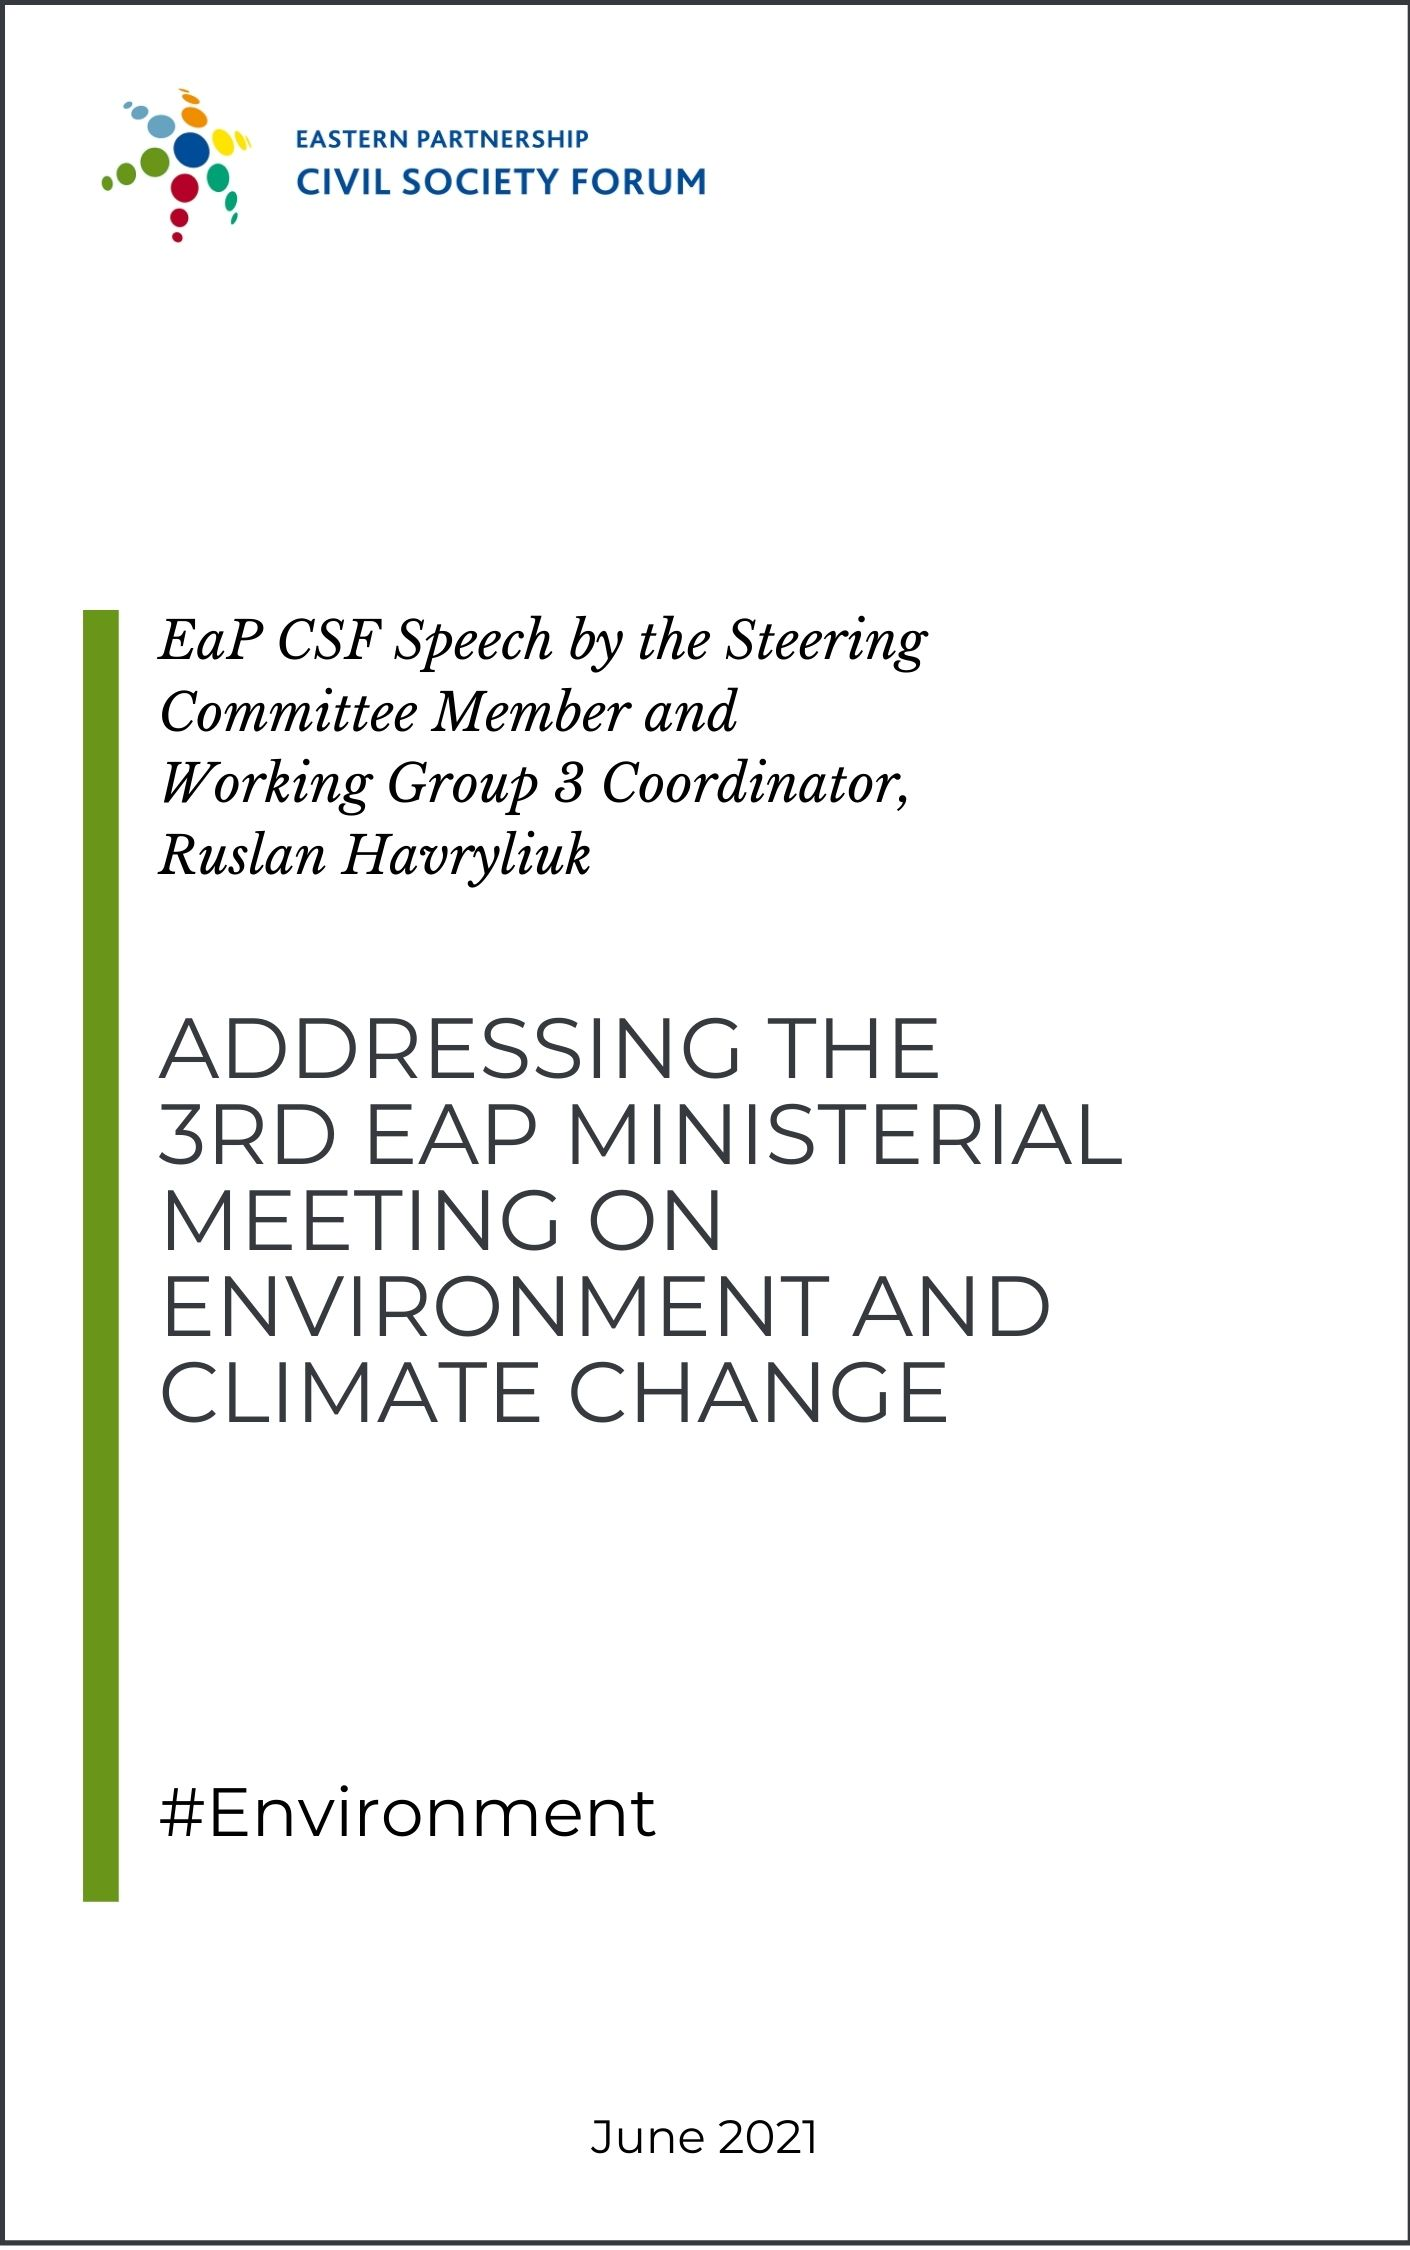 EaP CSF at 3rd EaP Ministerial Meeting on Environment and Climate Change